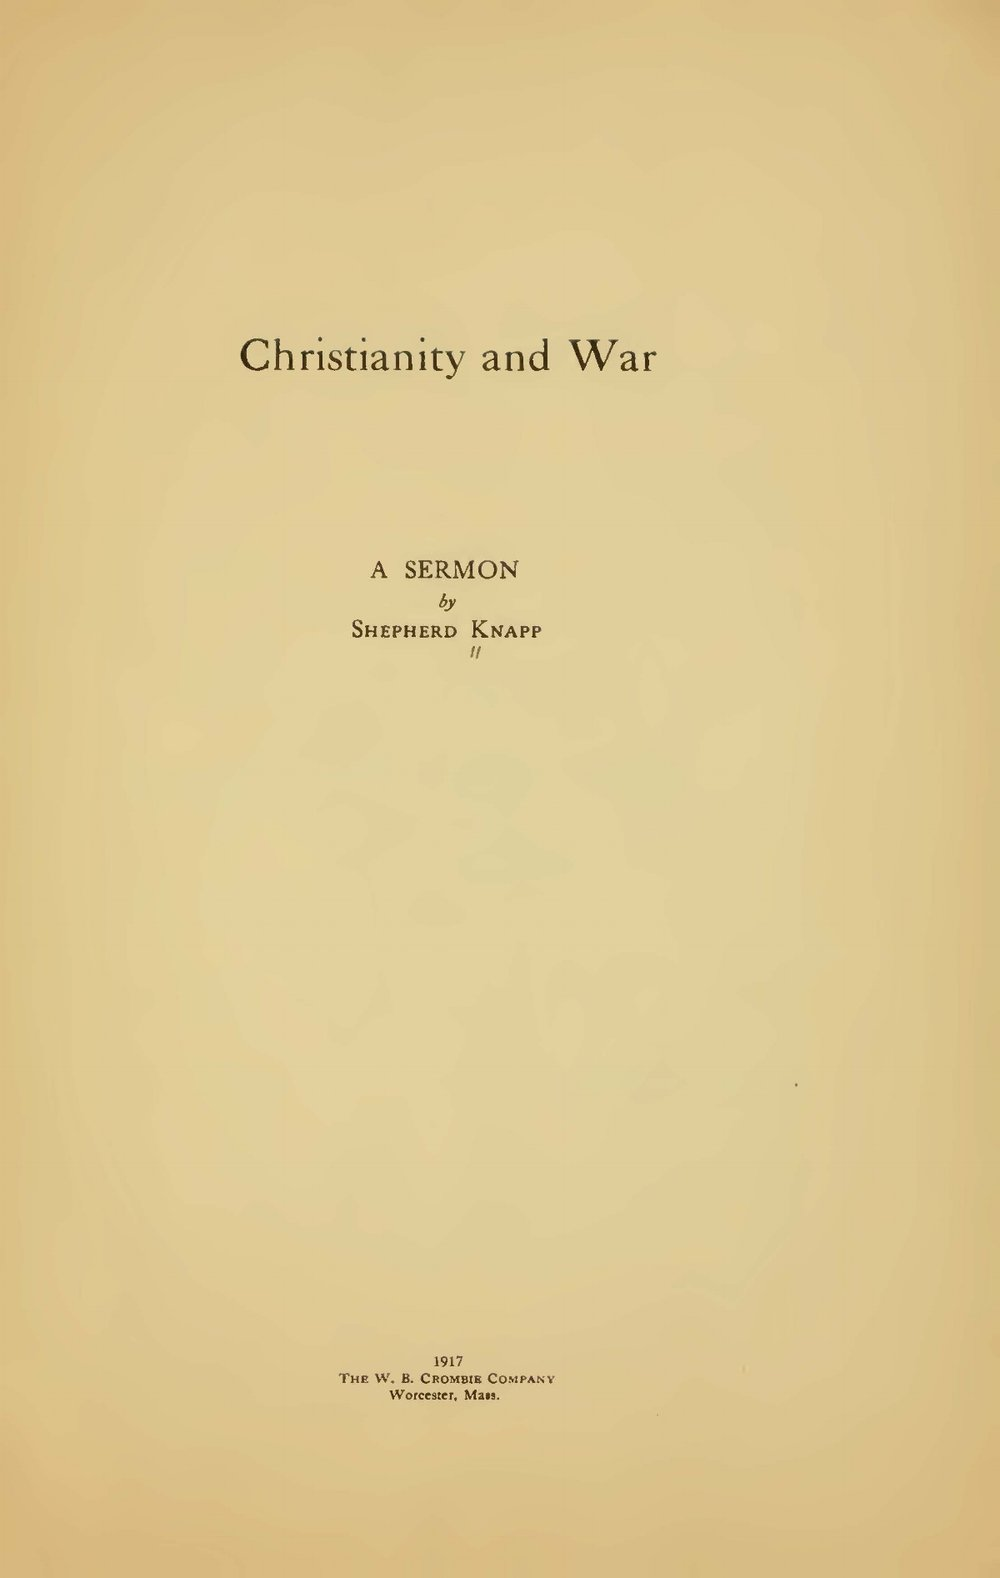 Knapp, Jr., Shepherd, Christianity and War Title Page.jpg